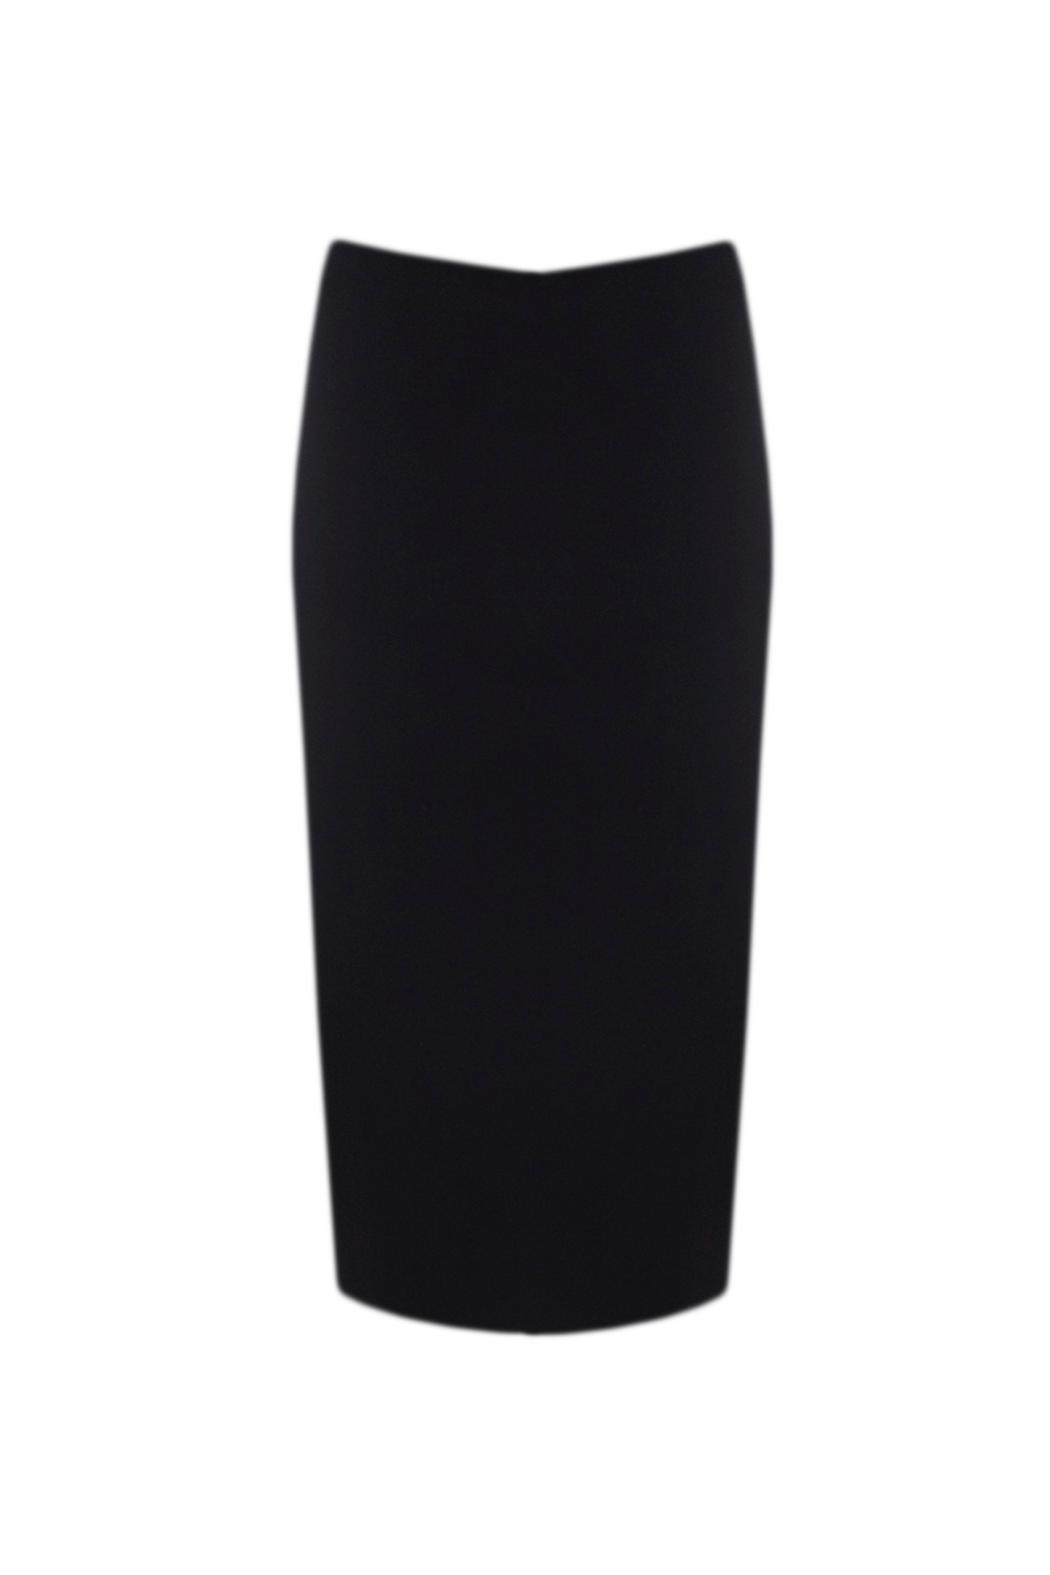 Charlie May Knit Pencil Skirt - Main Image